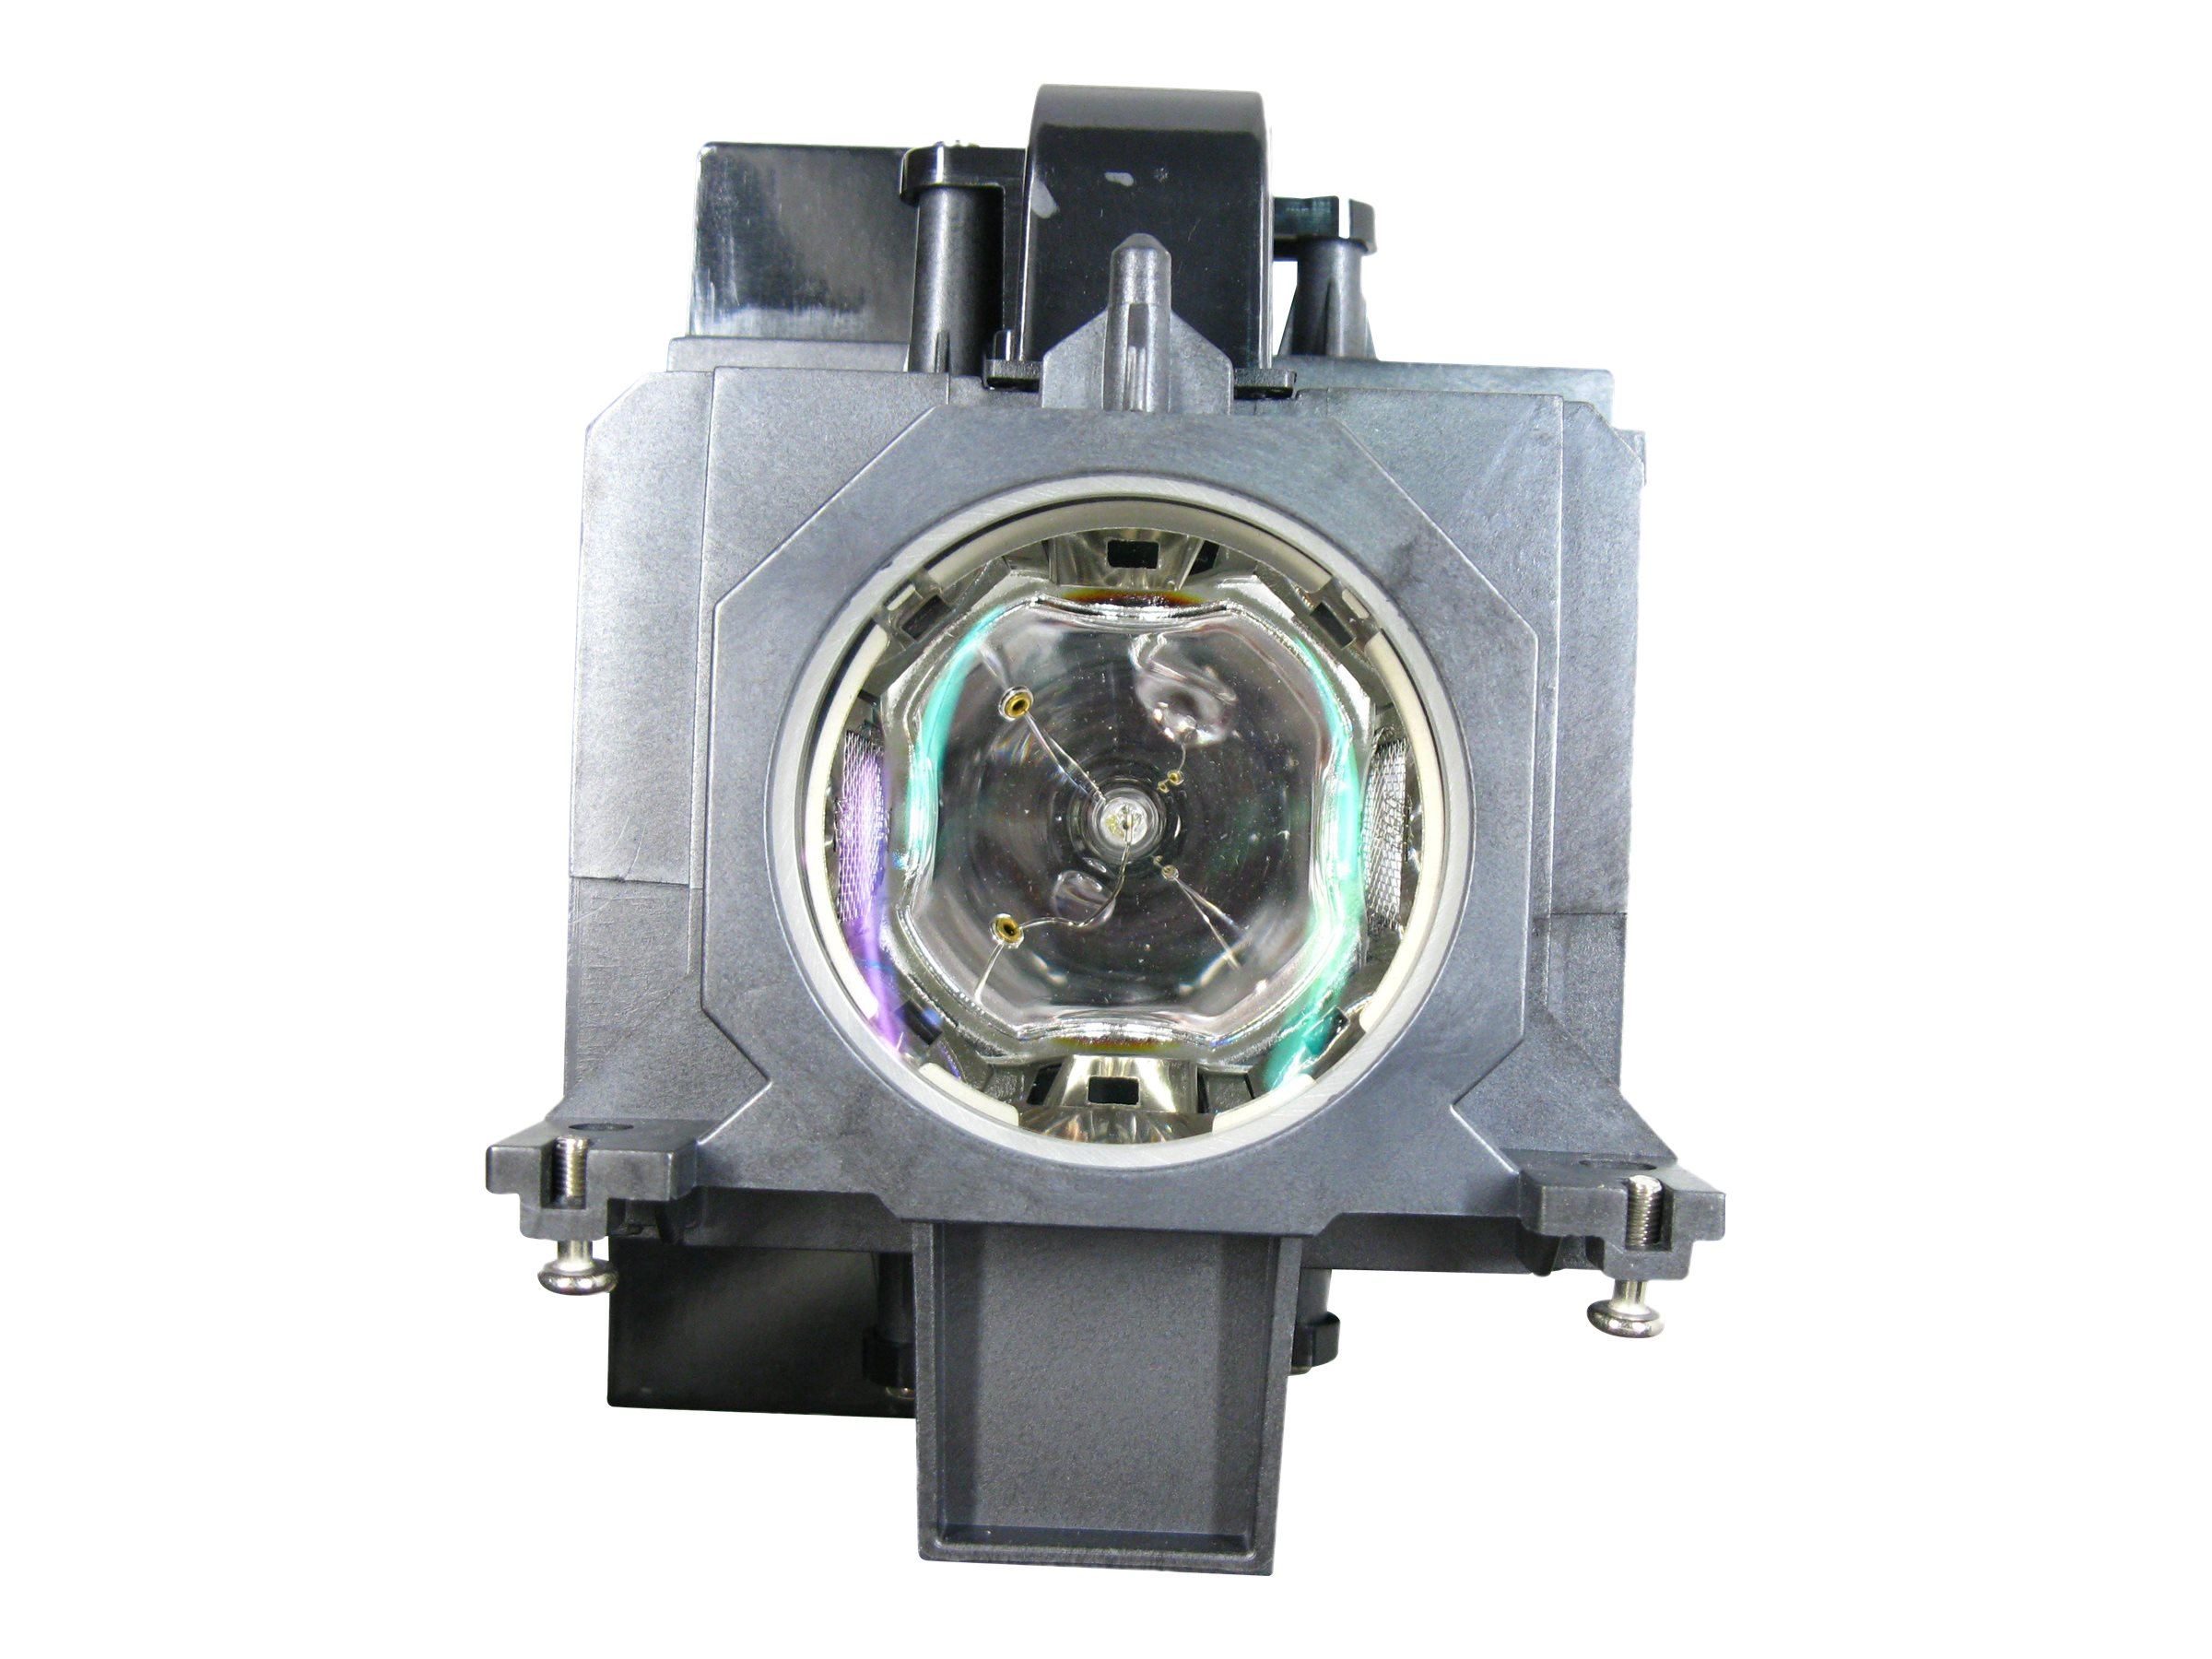 V7 Replacement Lamp for PLC-XM150, LW555, VPL2177-1N, 17259561, Projector Lamps